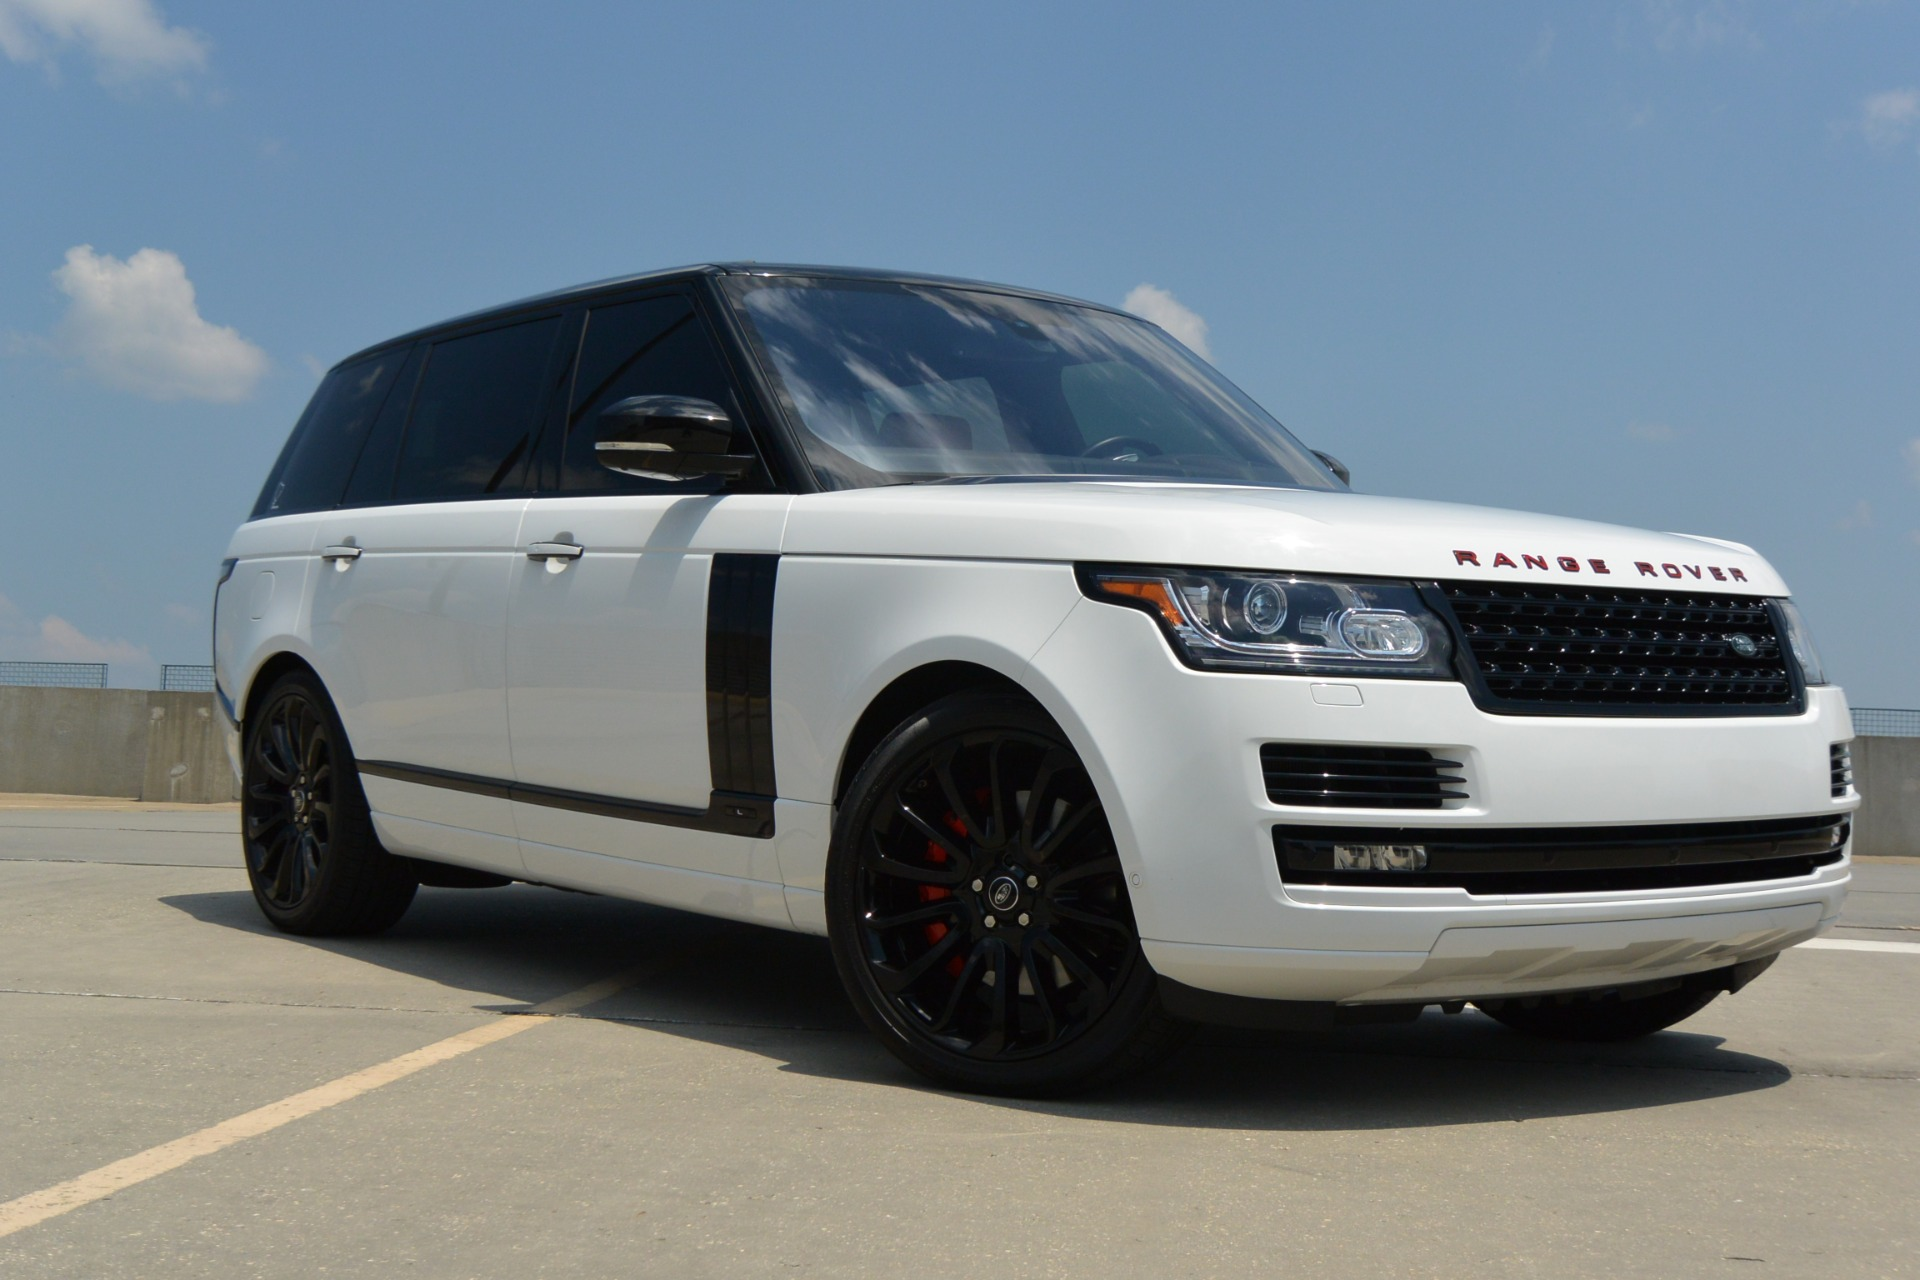 Used-2016-Land-Rover-Range-Rover-Autobiography-for-sale-Jackson-MS